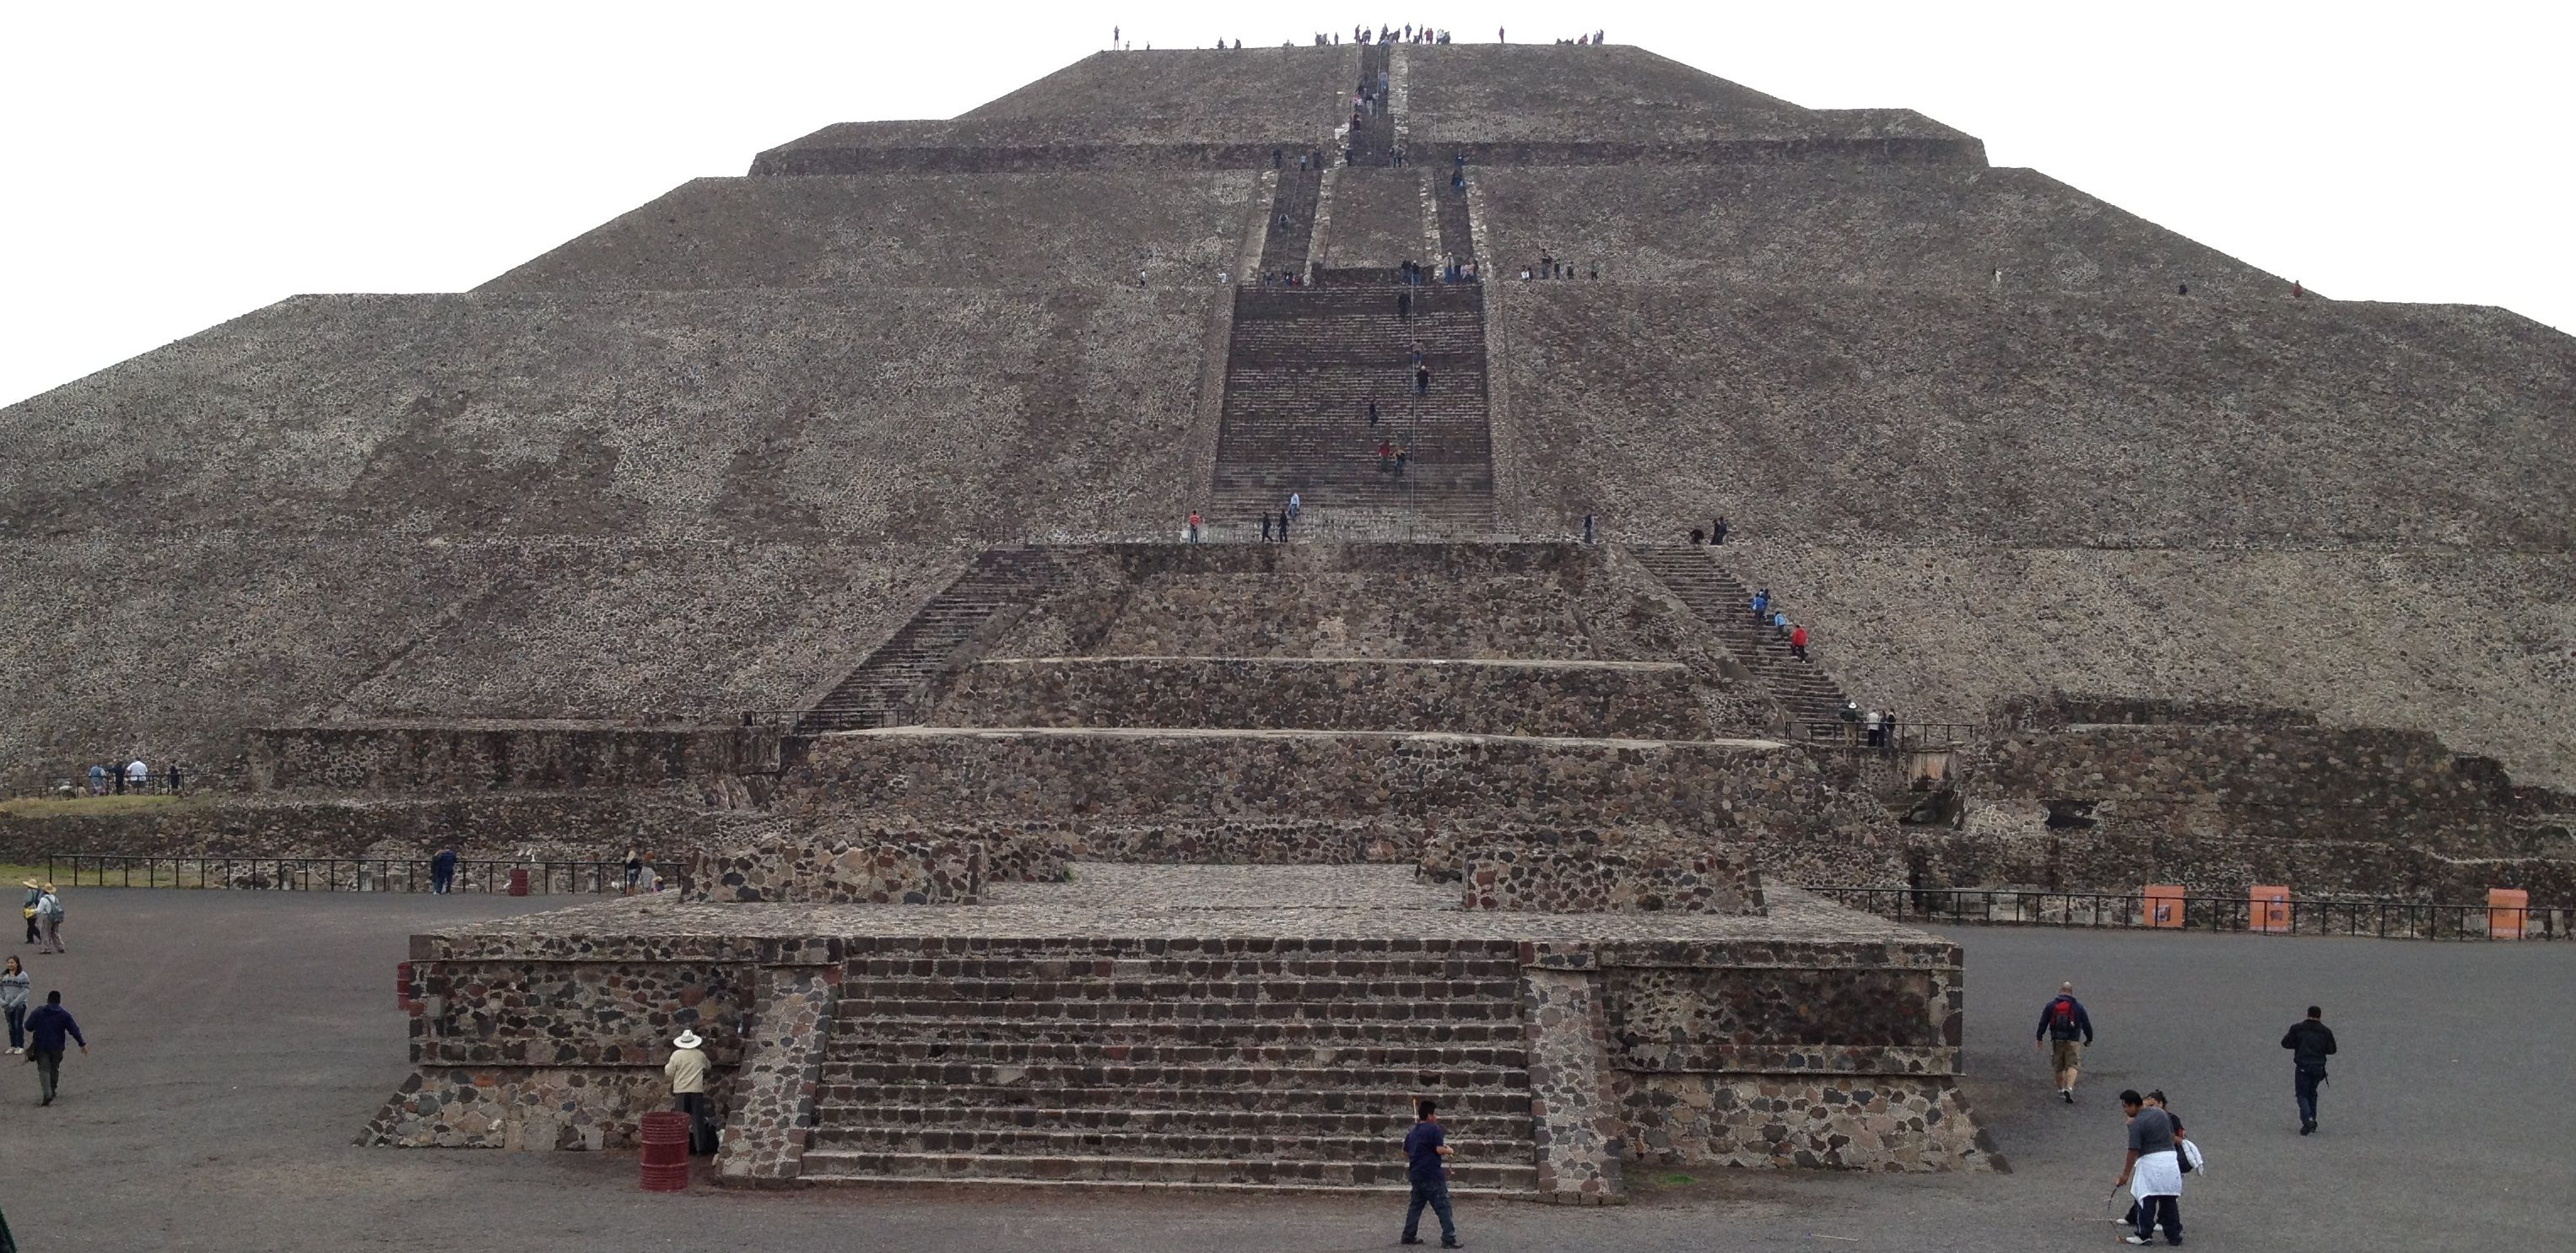 A Guide To Mexico's Aztec Ruins  |Tenochtitlan Ruins